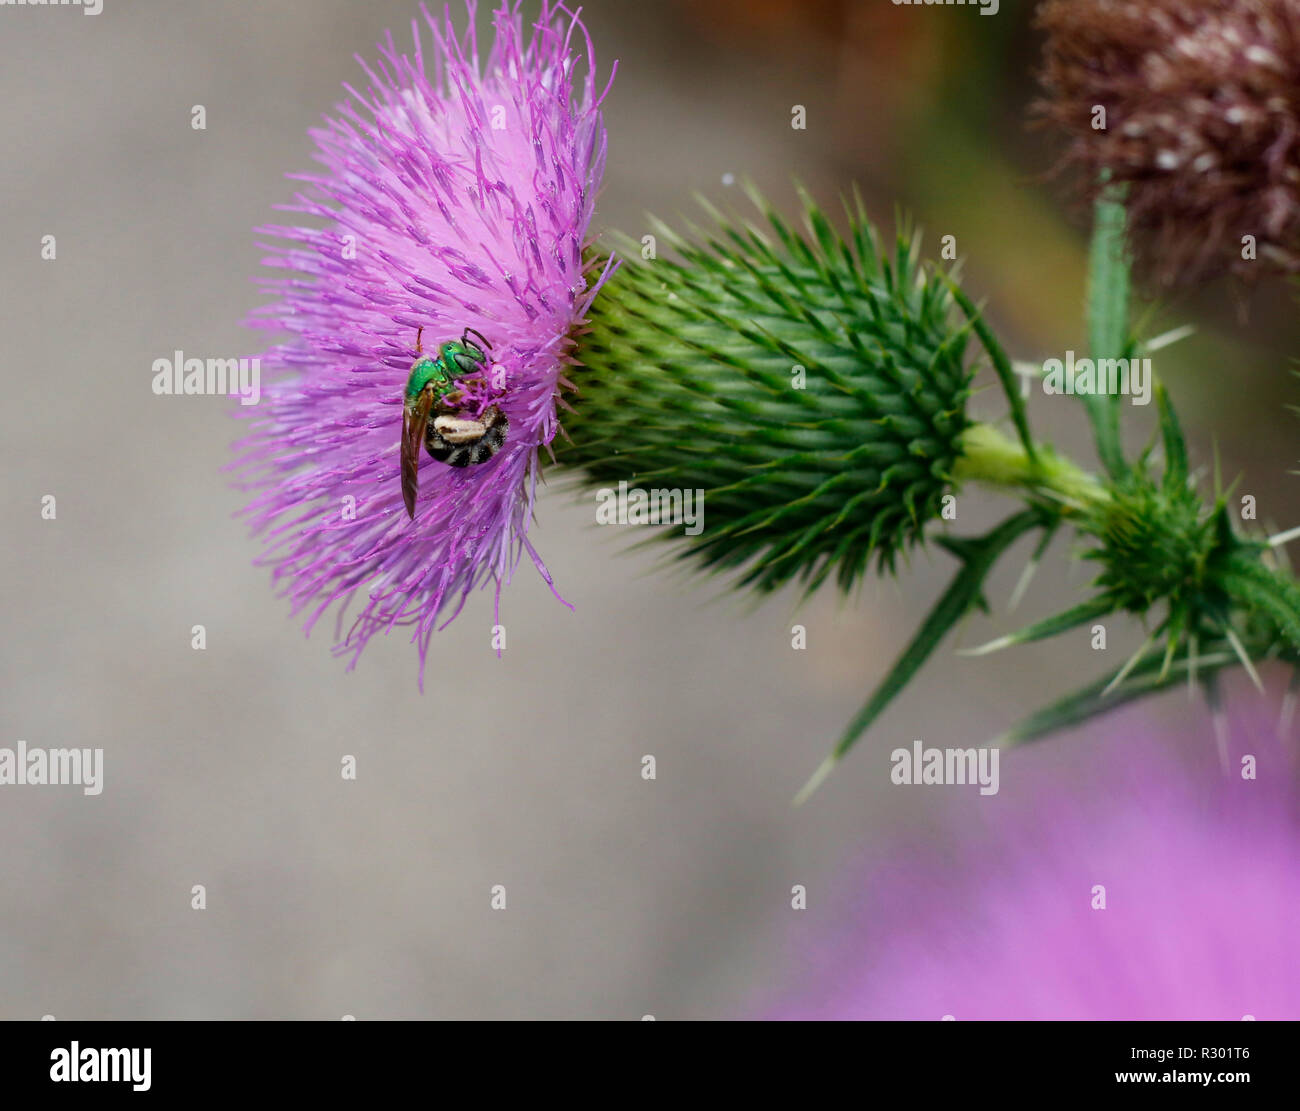 Bicolored Green sweat bee, Agapostemon, gathering pollen on thistle flower, Summer Jeffersonville, Indiana - Stock Image